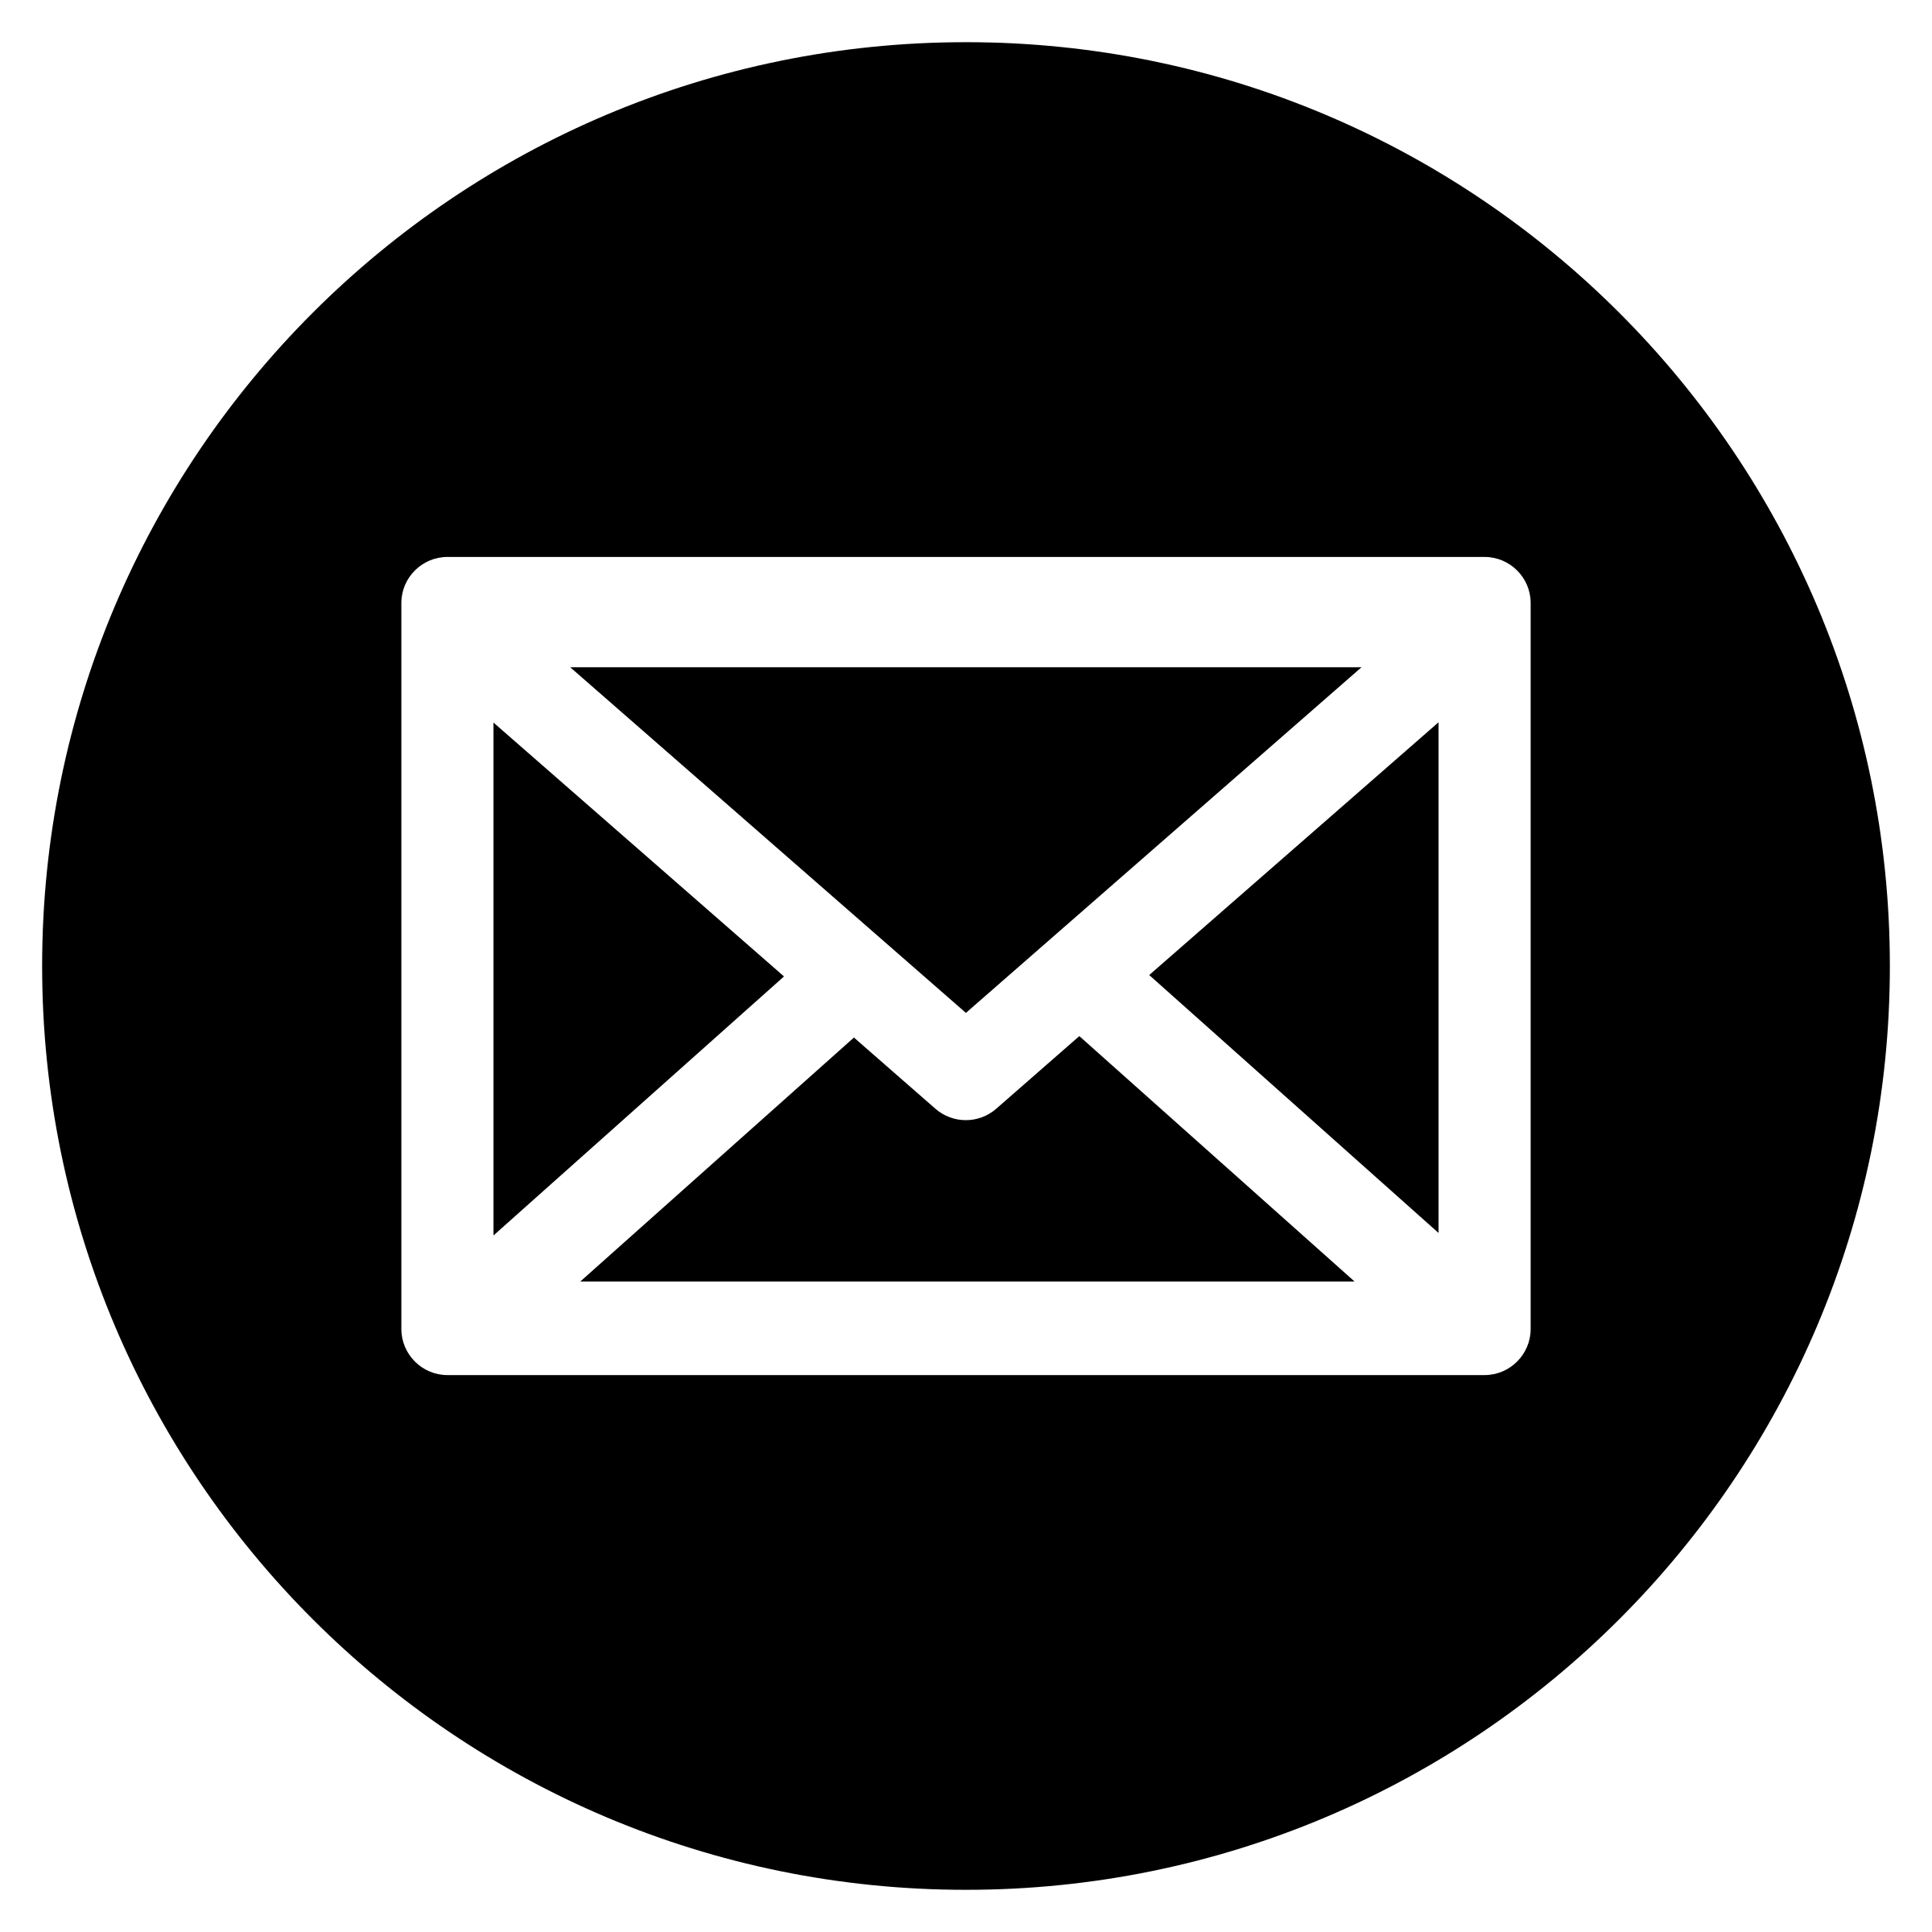 Phone email website icons png. Mail icon white on